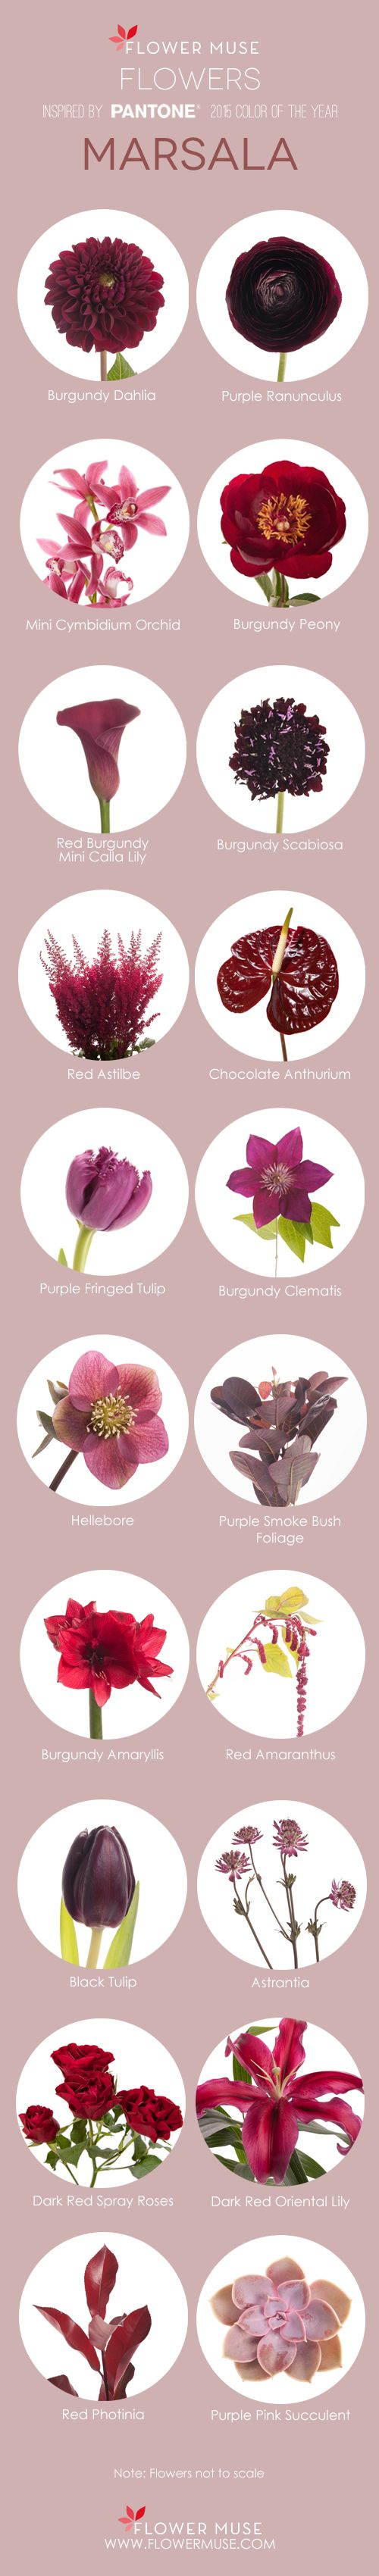 2015 Color of The Year Marsala Flower Inspiration - on Flower Muse Blog: http://www.flowermuse.com/blog/marsala-flowers/